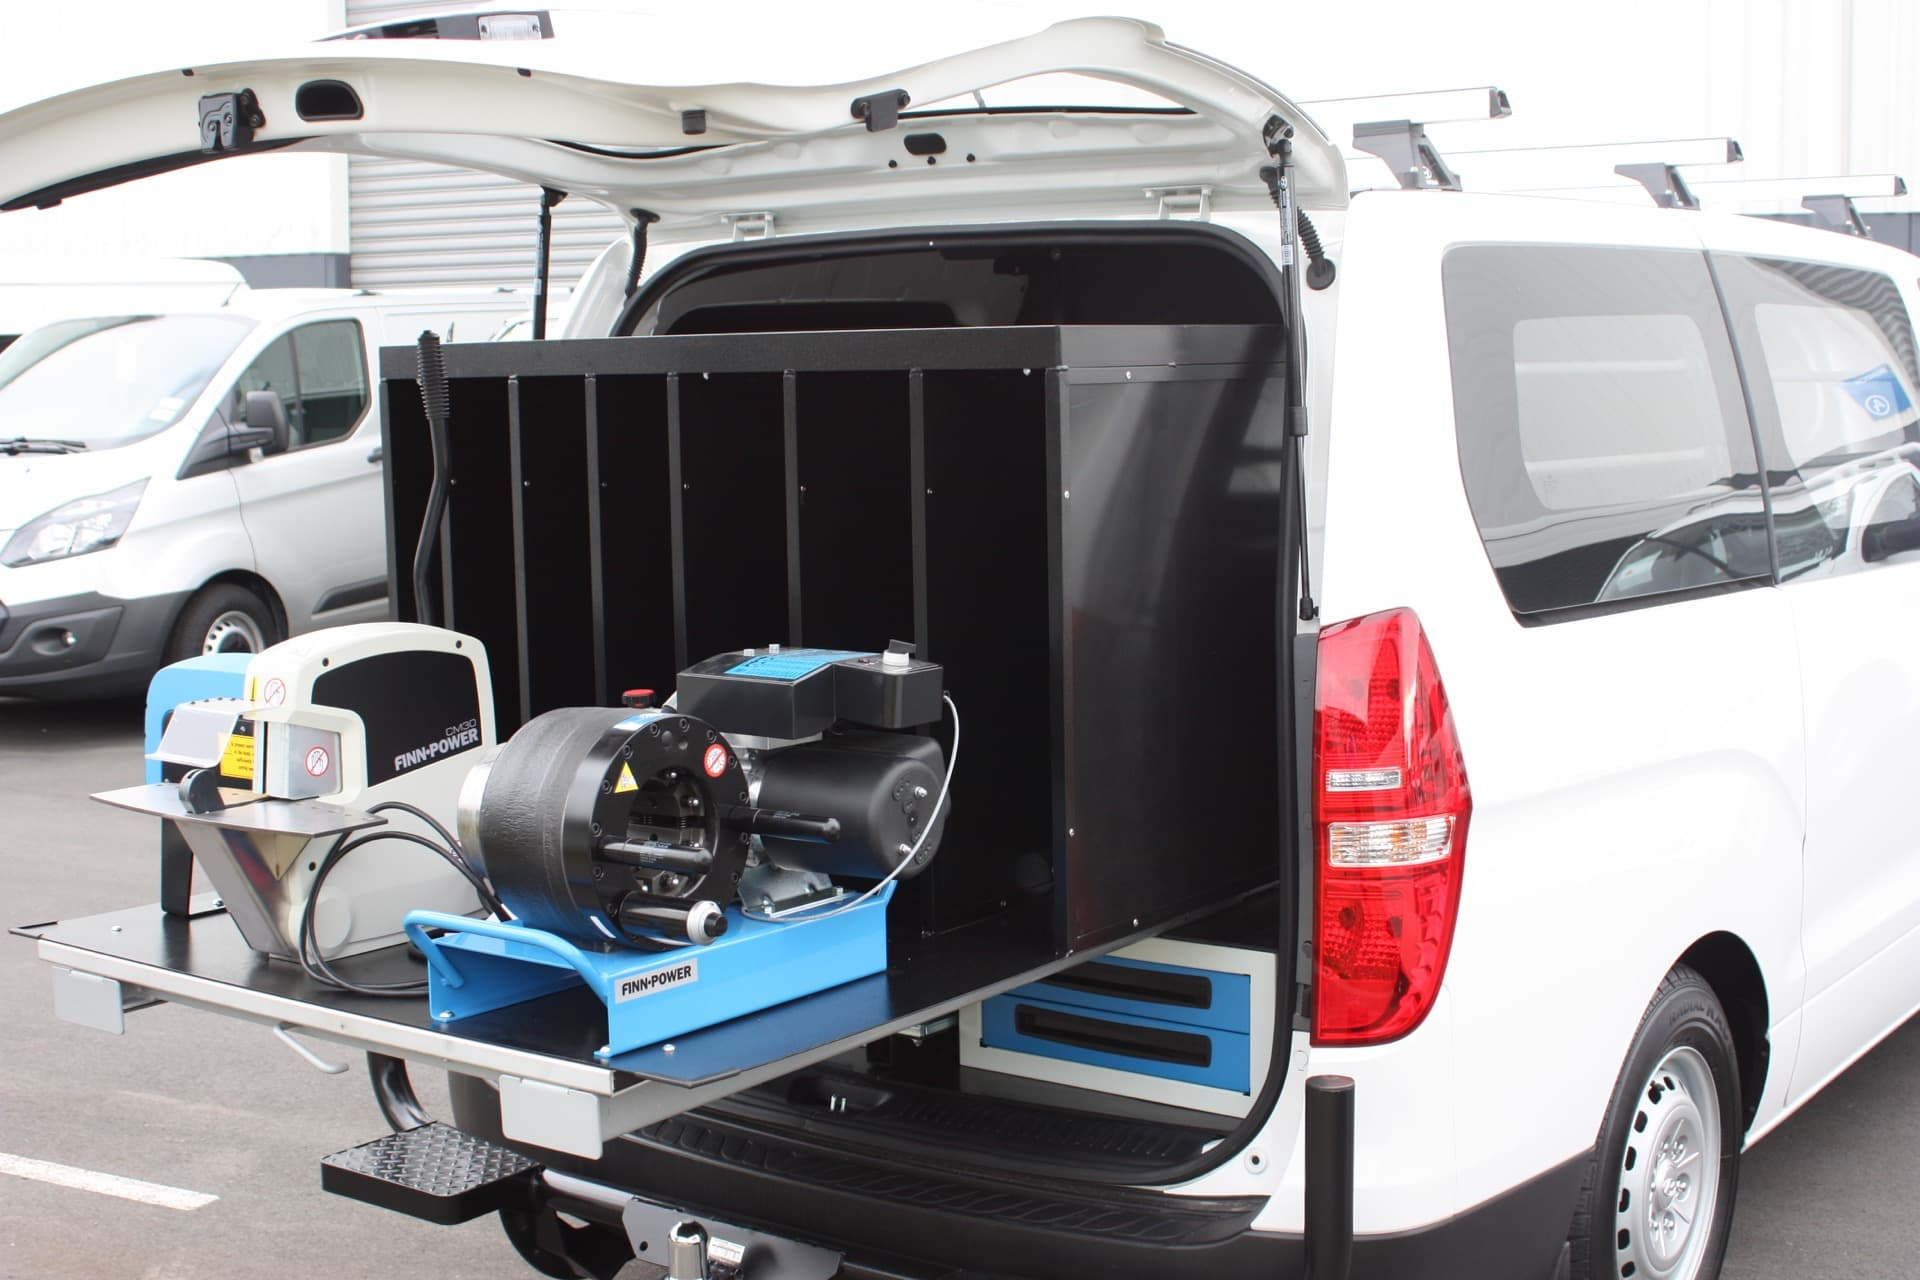 Custom design van with power tool dock